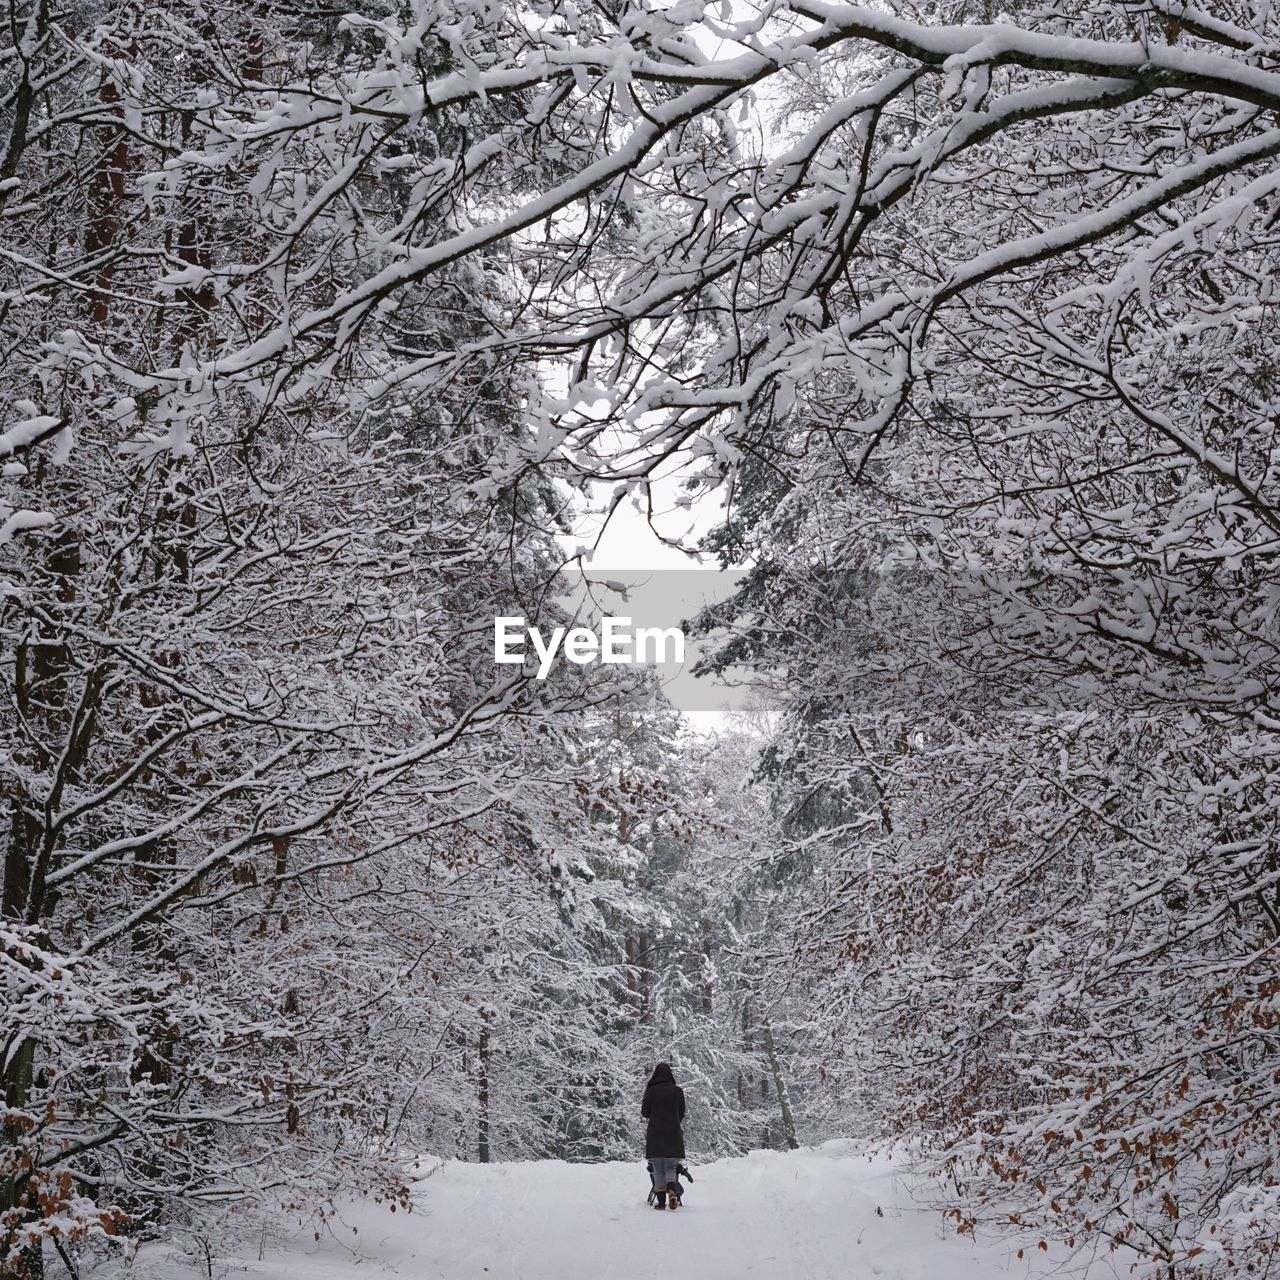 winter, snow, cold temperature, weather, nature, tree, walking, rear view, beauty in nature, full length, real people, bare tree, branch, leisure activity, tranquility, day, outdoors, warm clothing, one person, landscape, men, snowing, people